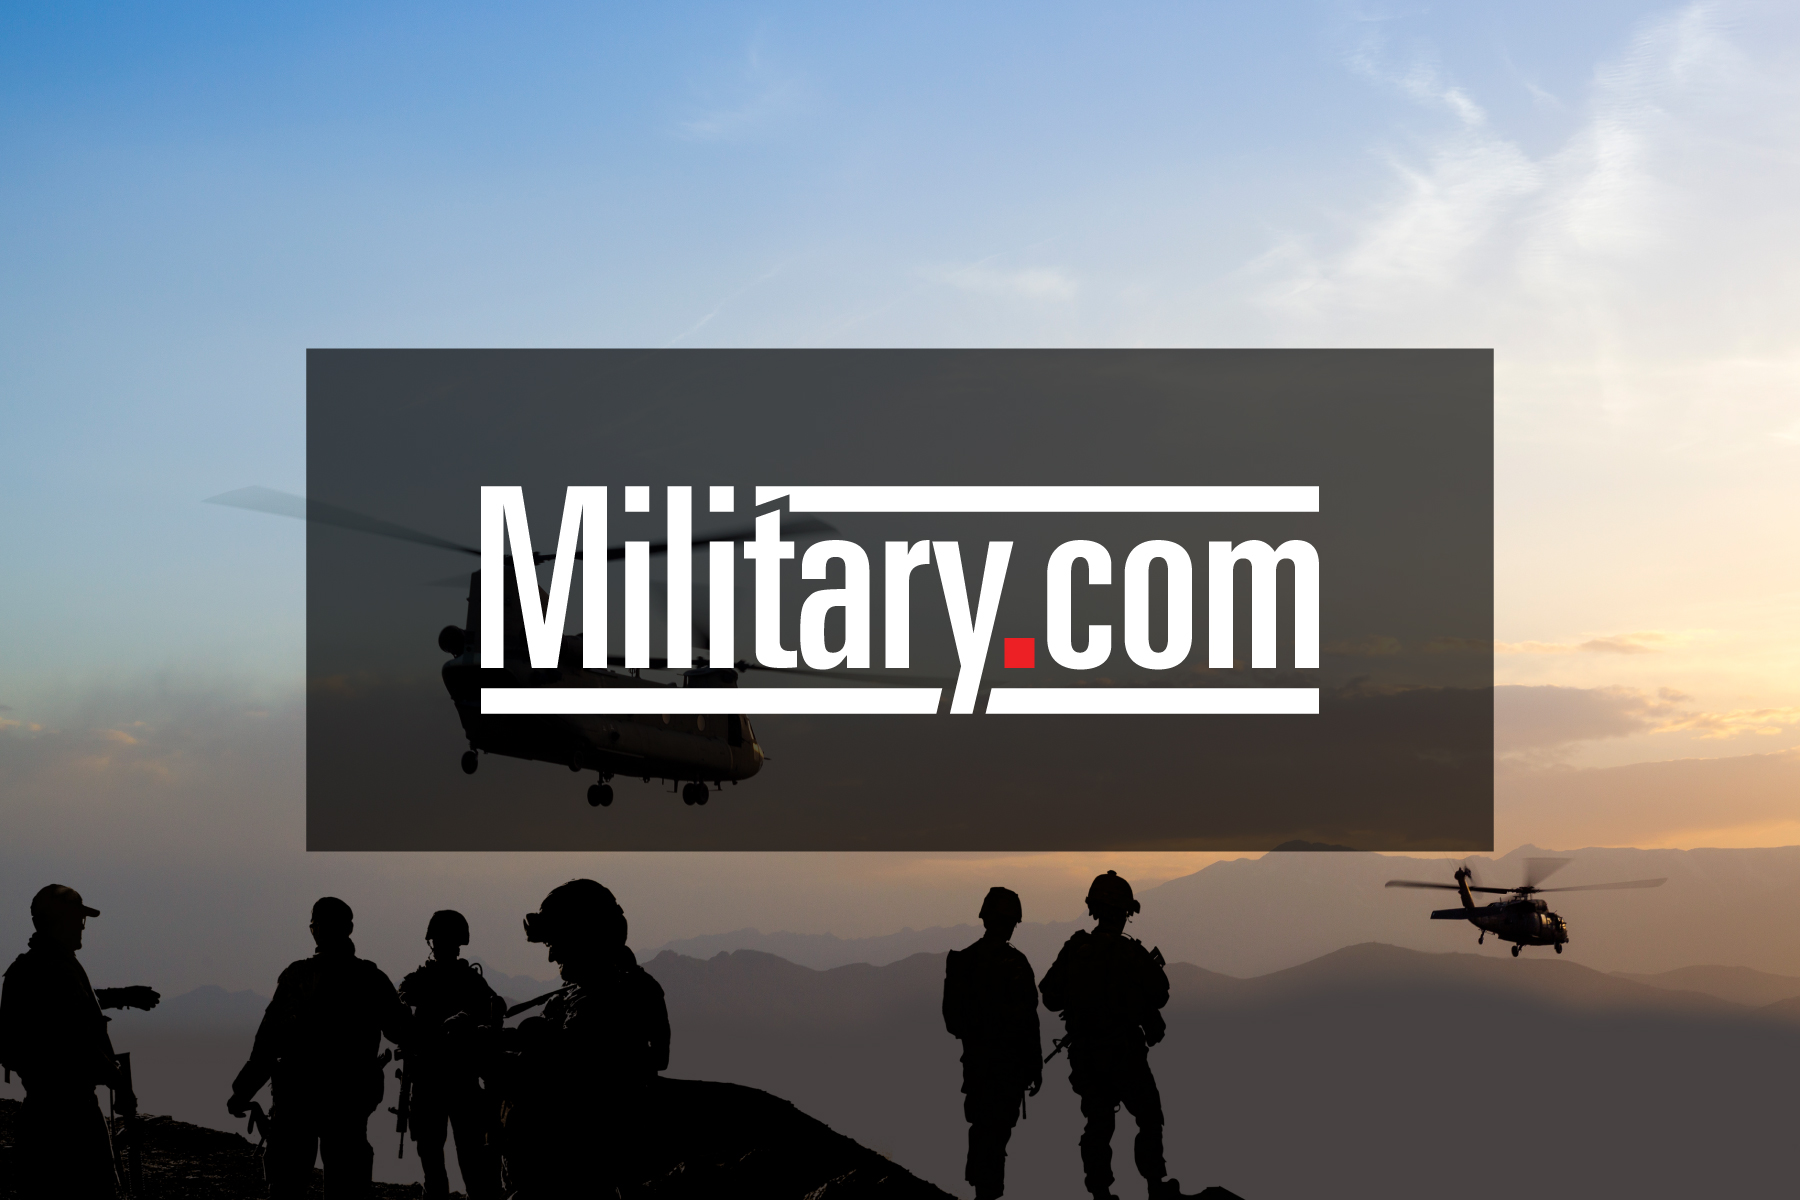 The USS Arizona Memorial museum will include a new exhibit on the Hiroshima atom bomb attack and reconciliation after the war. The ship remains the grave for most of the battleship's 1,177 sailors killed in the Dec. 7, 1941, Japanese attack.